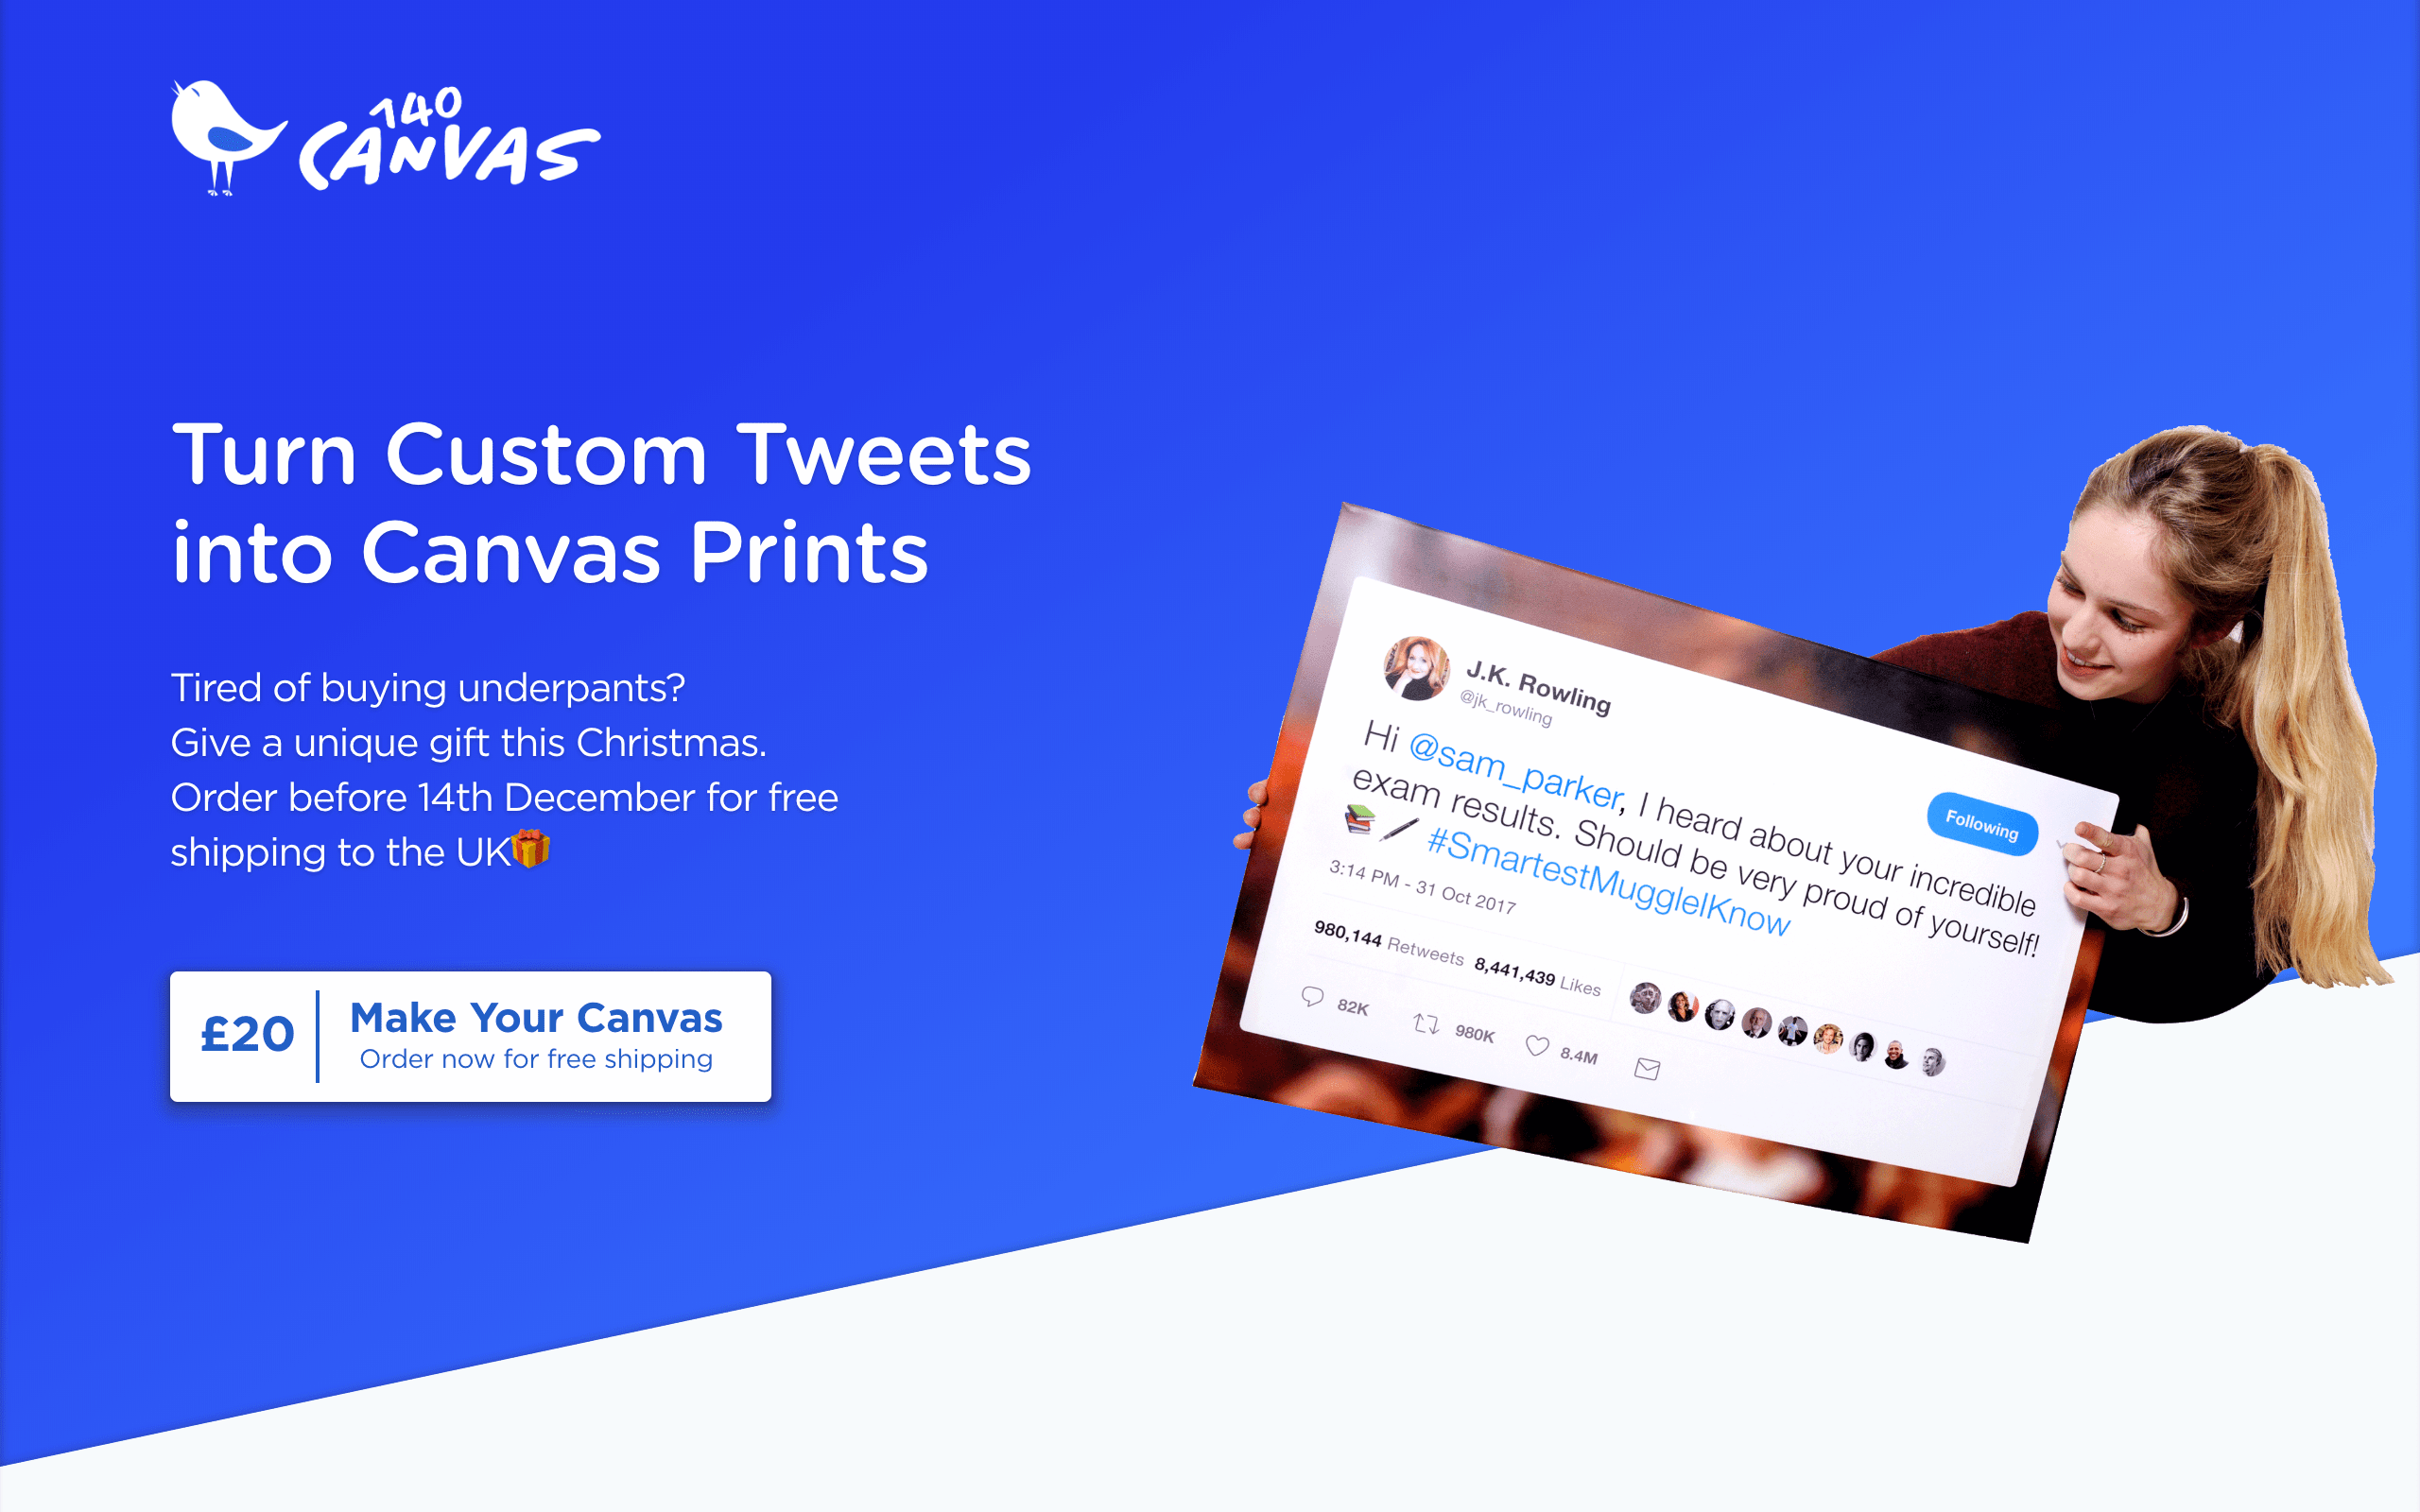 140 Canvas Landing Page